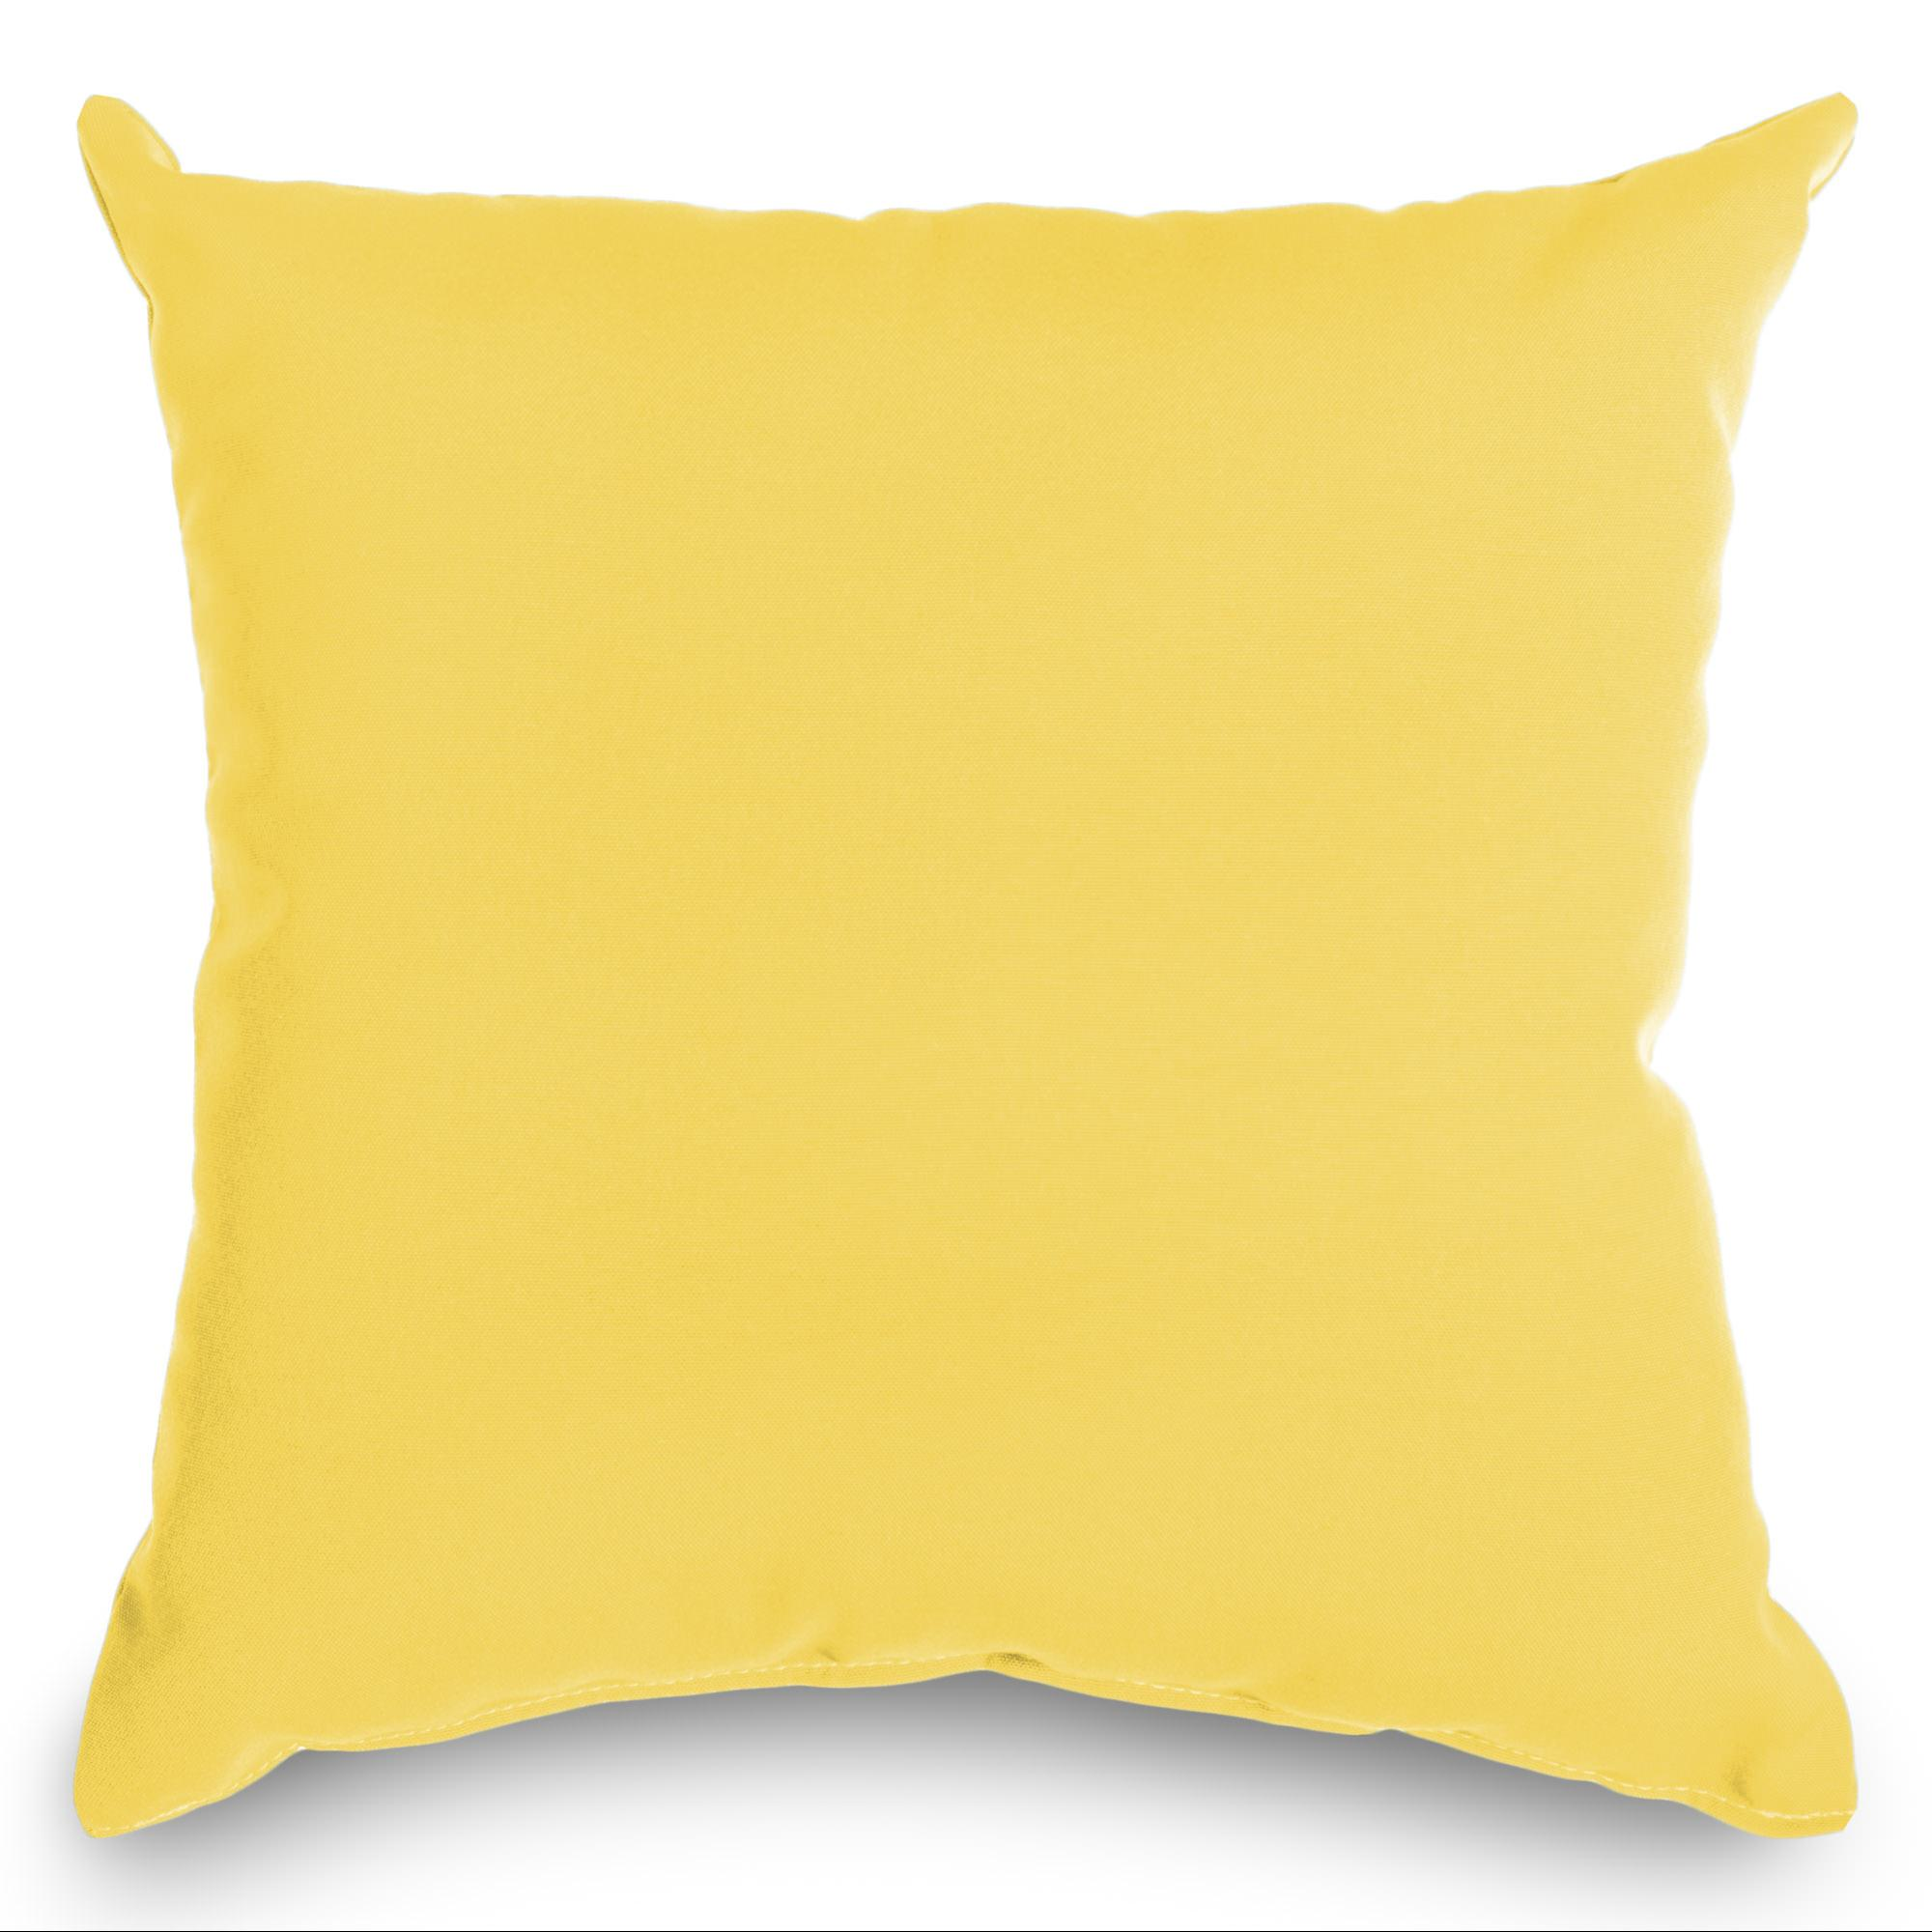 Canary Yellow Weathersmart Outdoor Throw Pillow (16